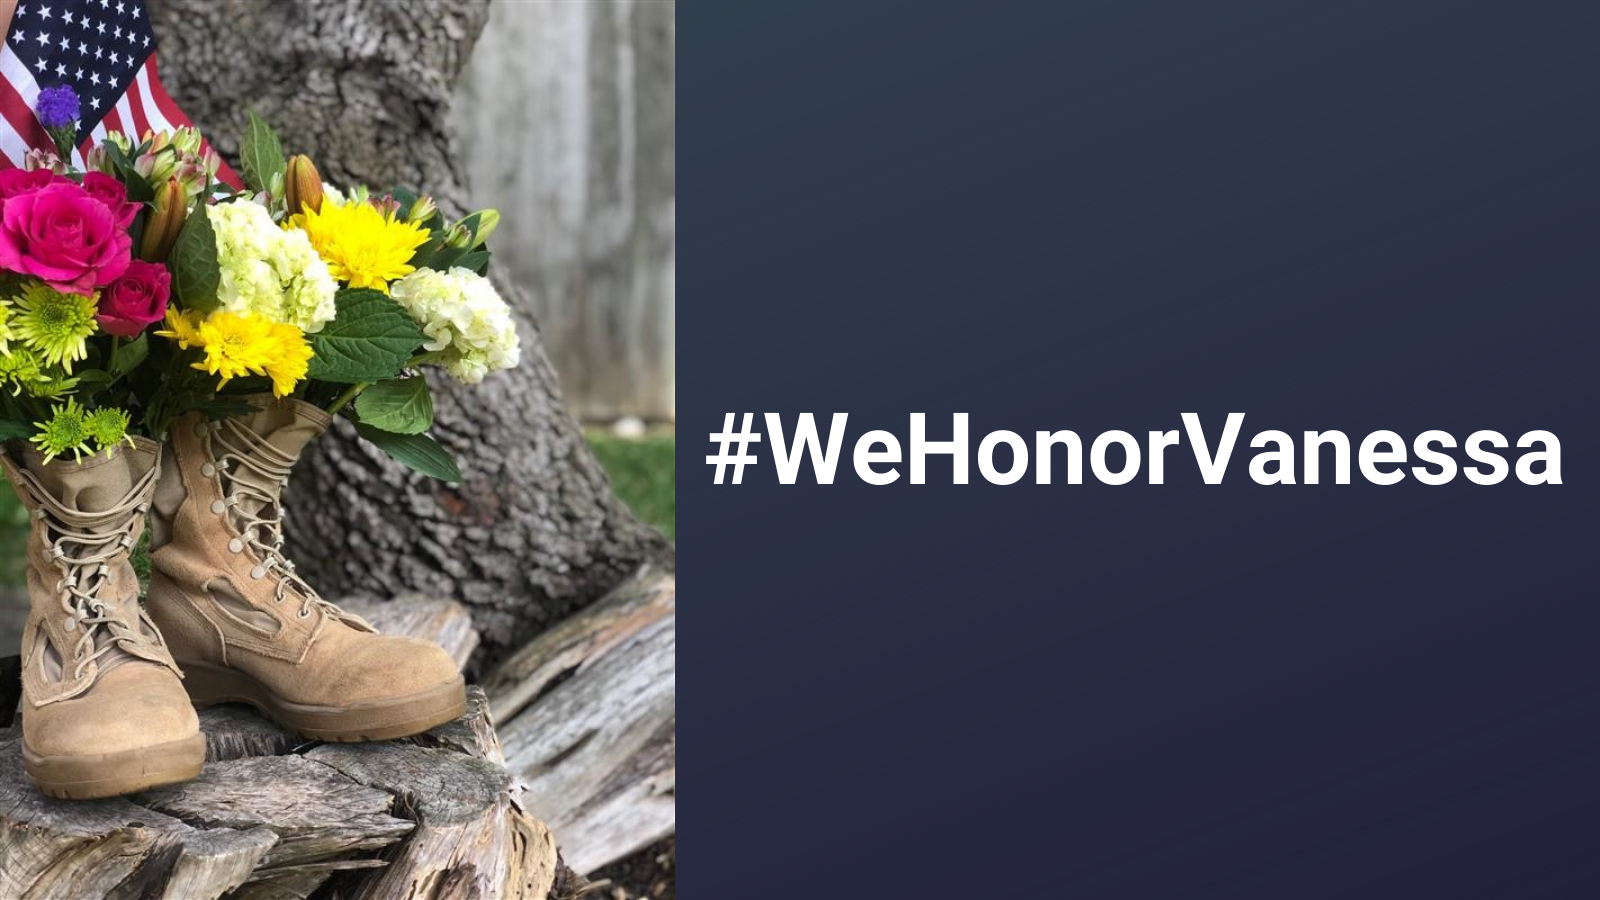 Bouquet of flowers in combat boots to support #WeHonorVanessa